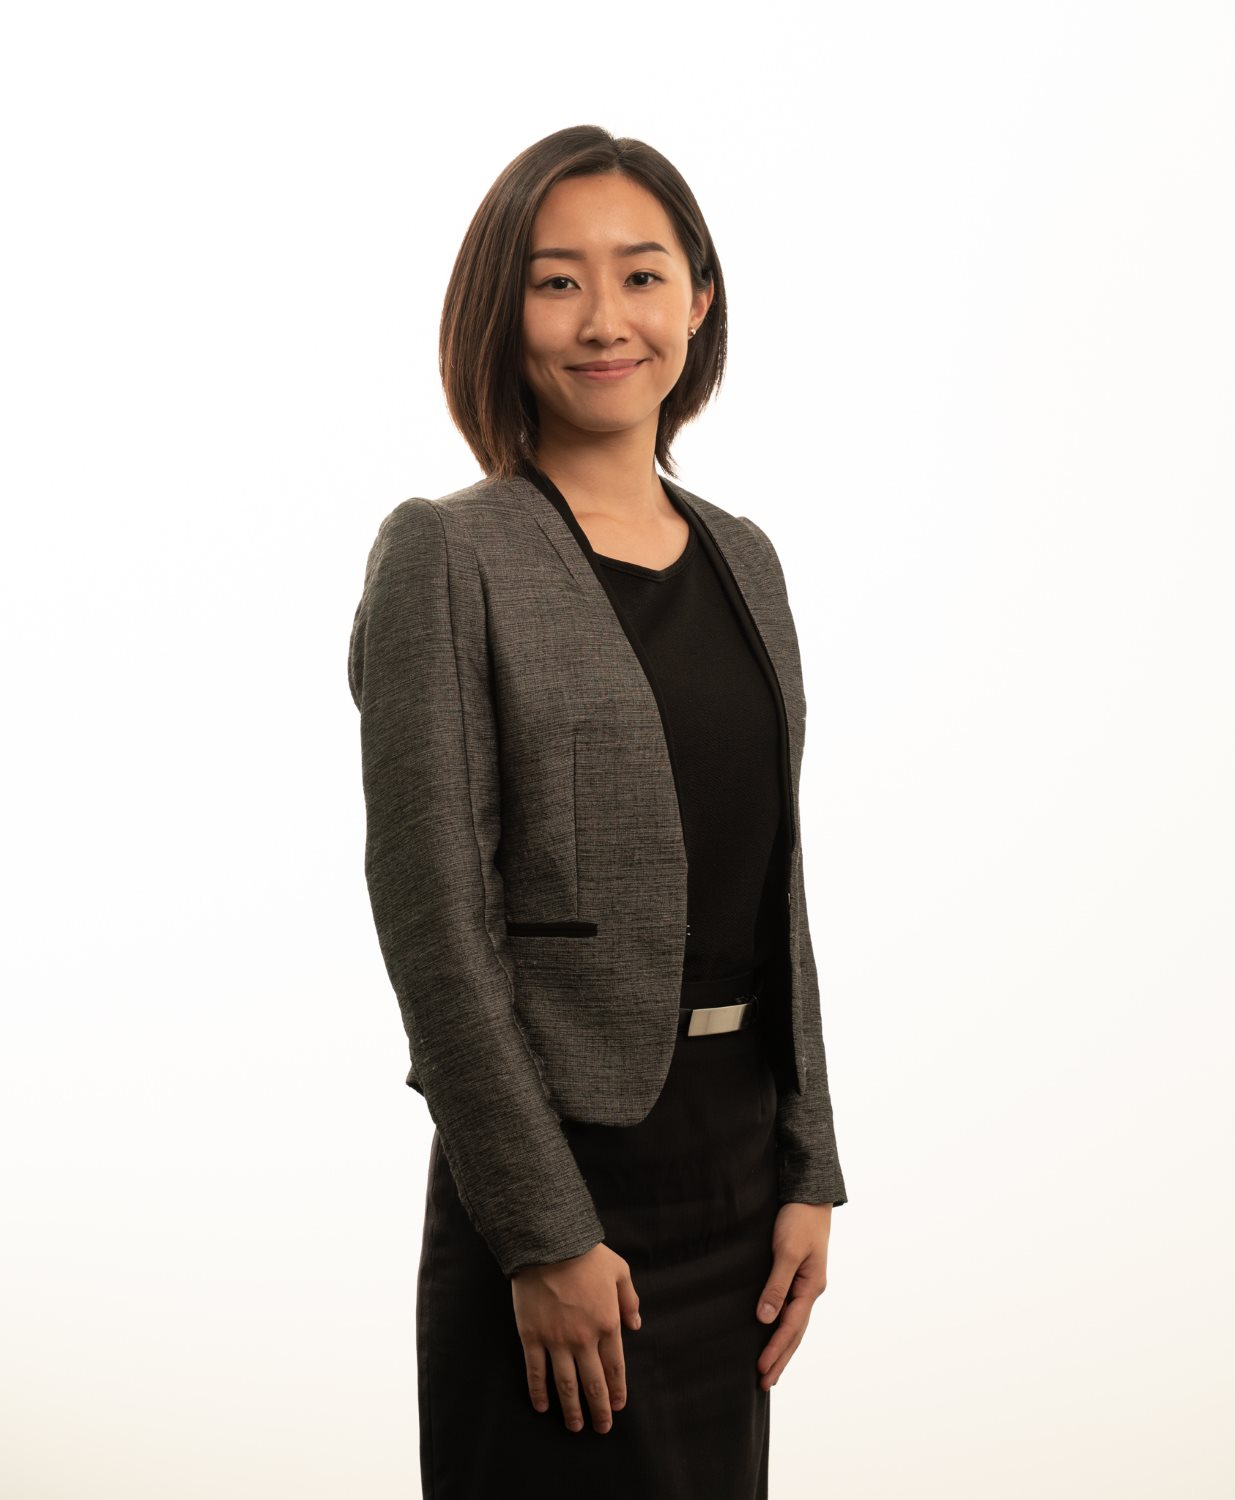 Female posing for corporate headshot with white background